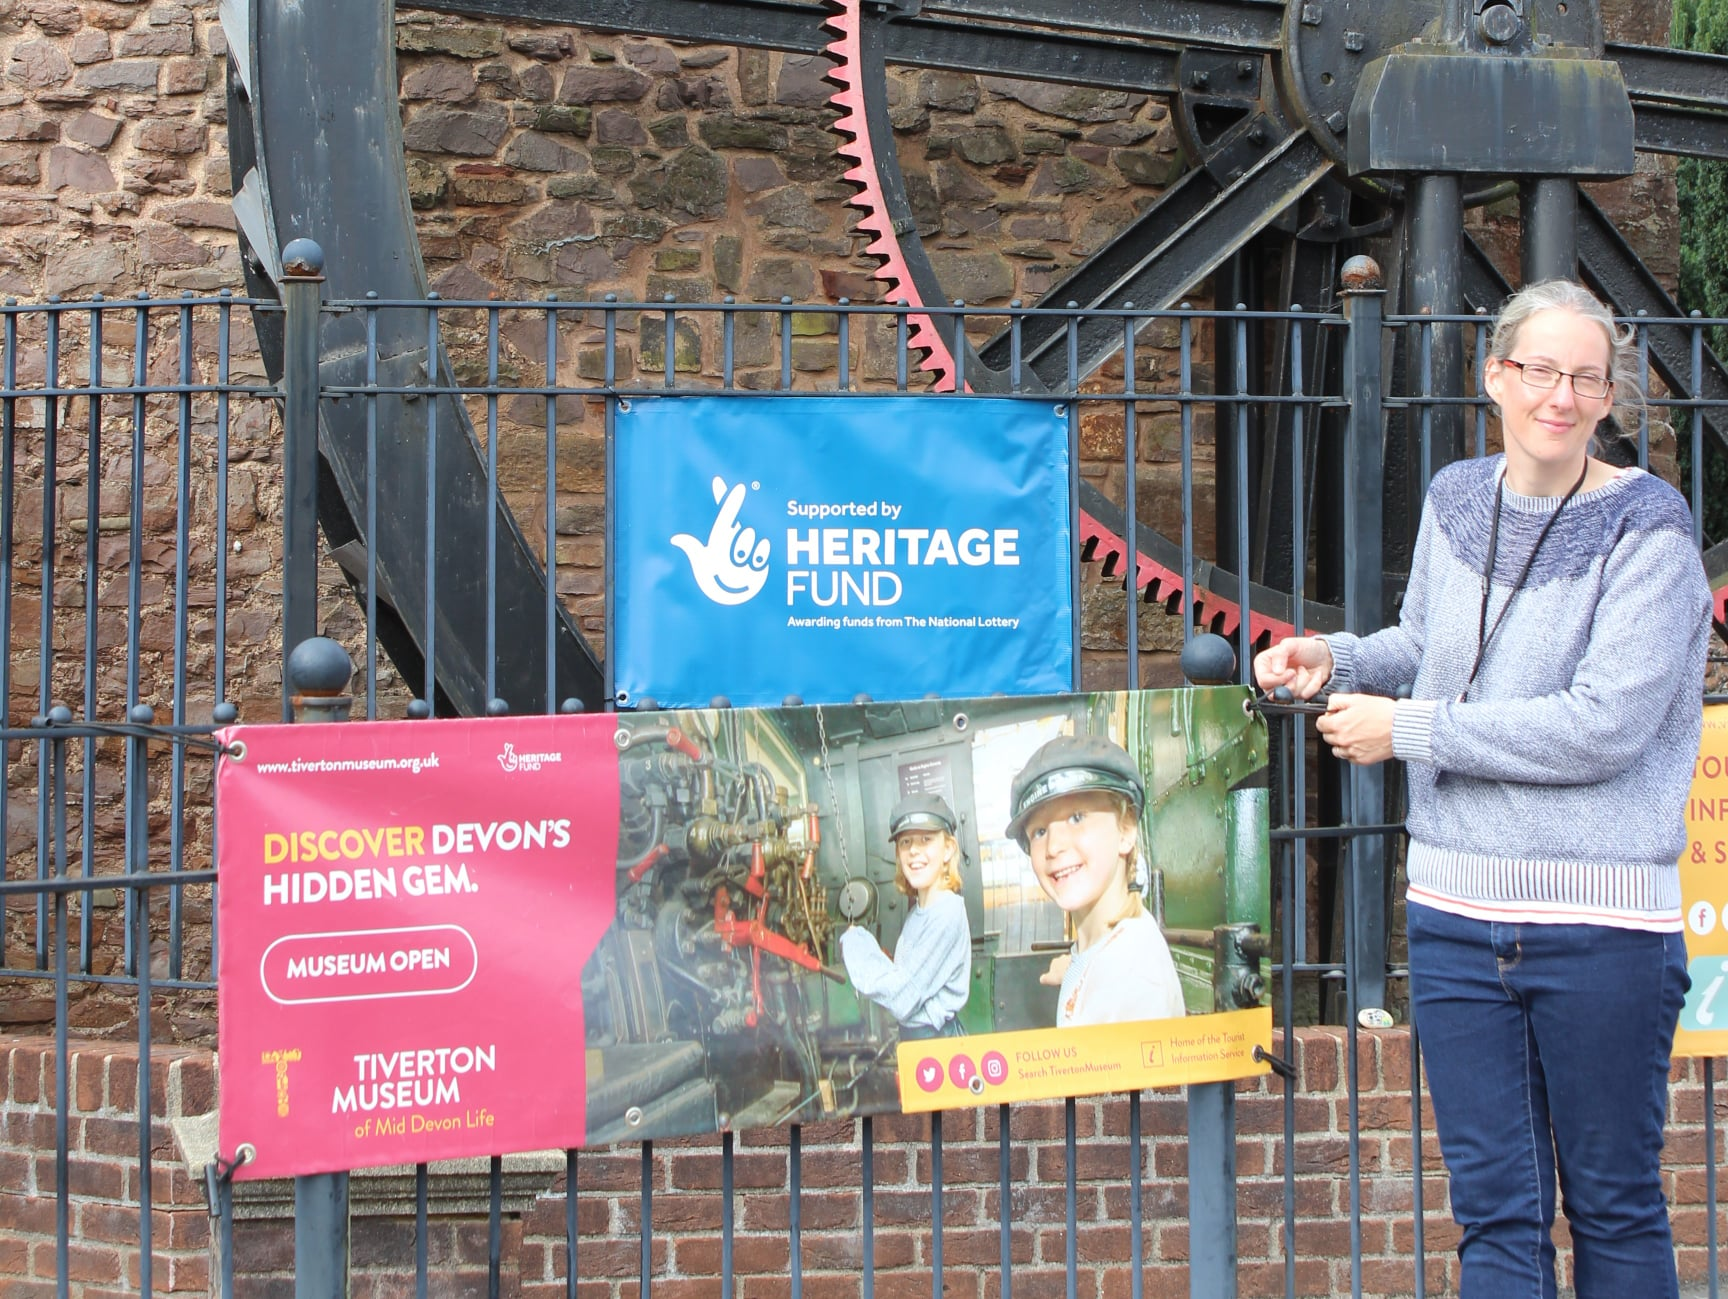 Museum Director putting open banner outside museum for the first time in nearly 6 months